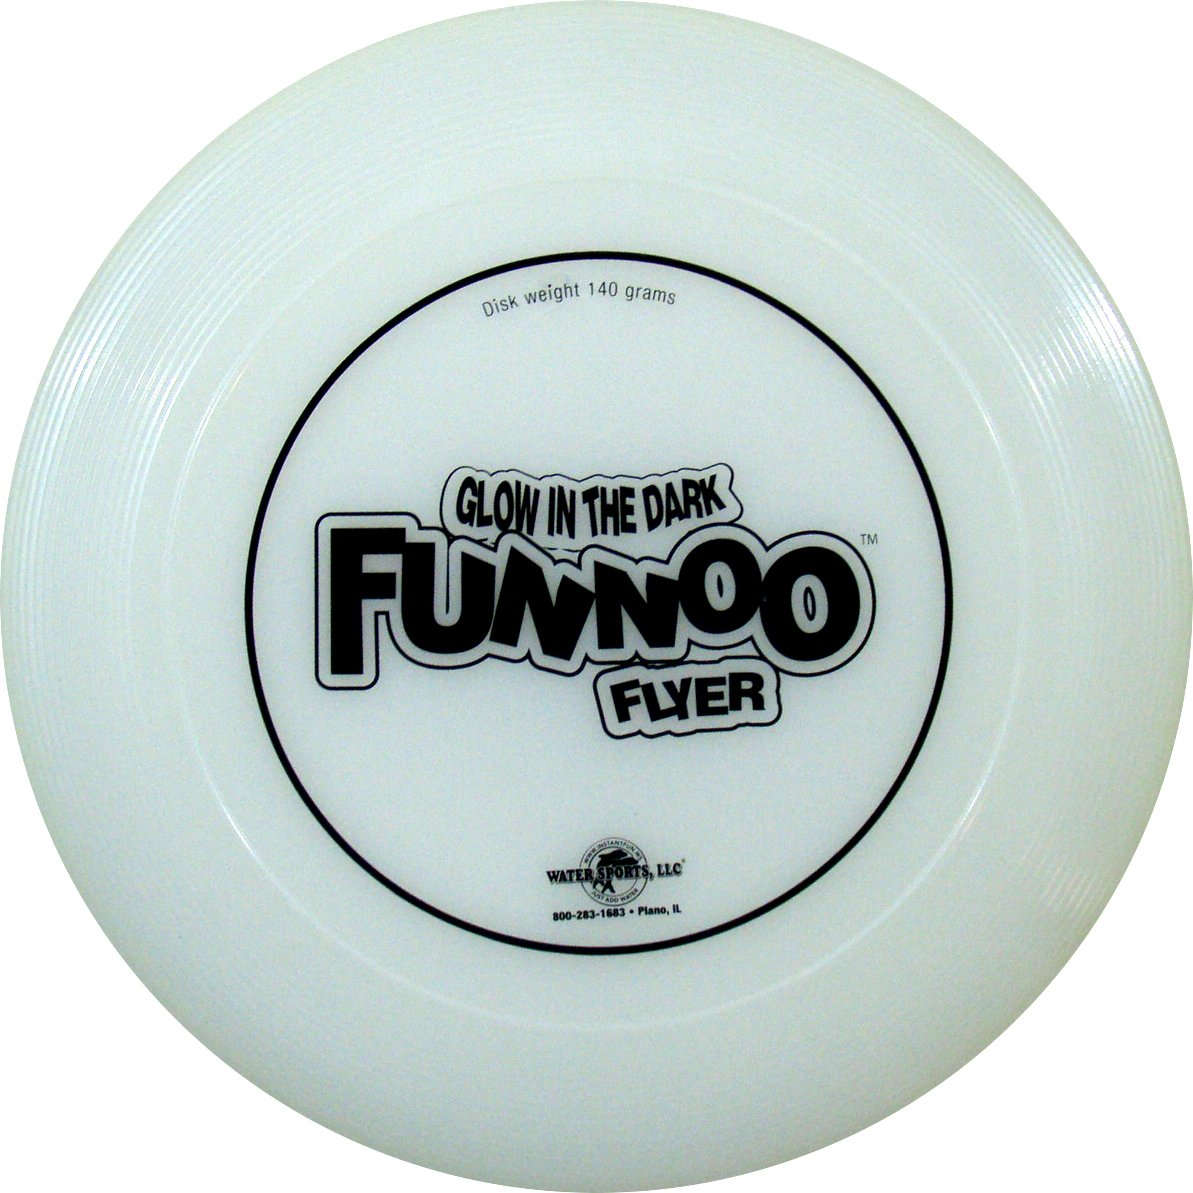 Water Sports Glow FUNNOO Flyer Glow in Dark Flying Disc 140 Gram Disk by Water Sports